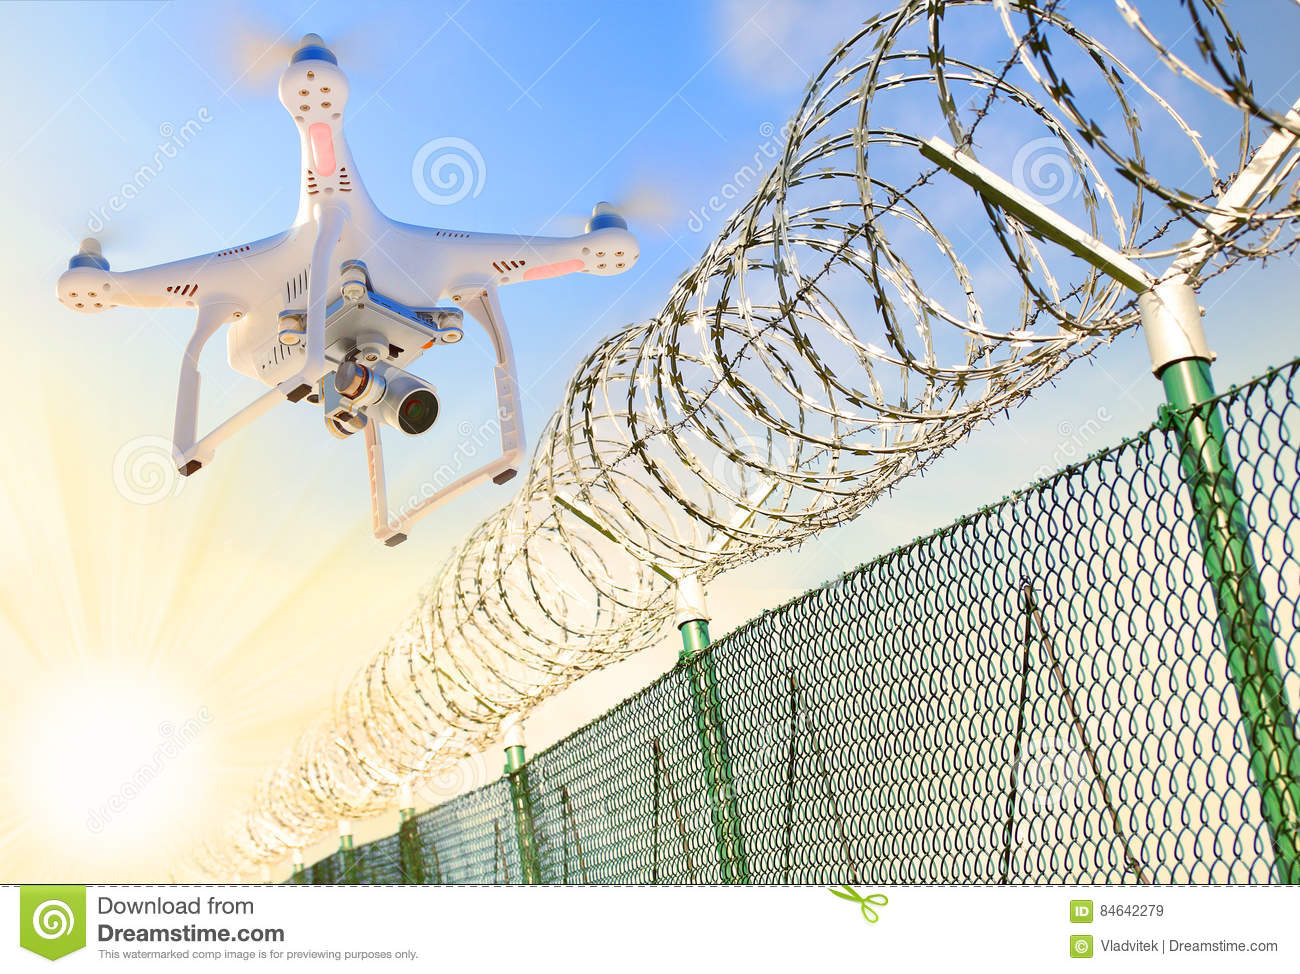 Border Security Technology